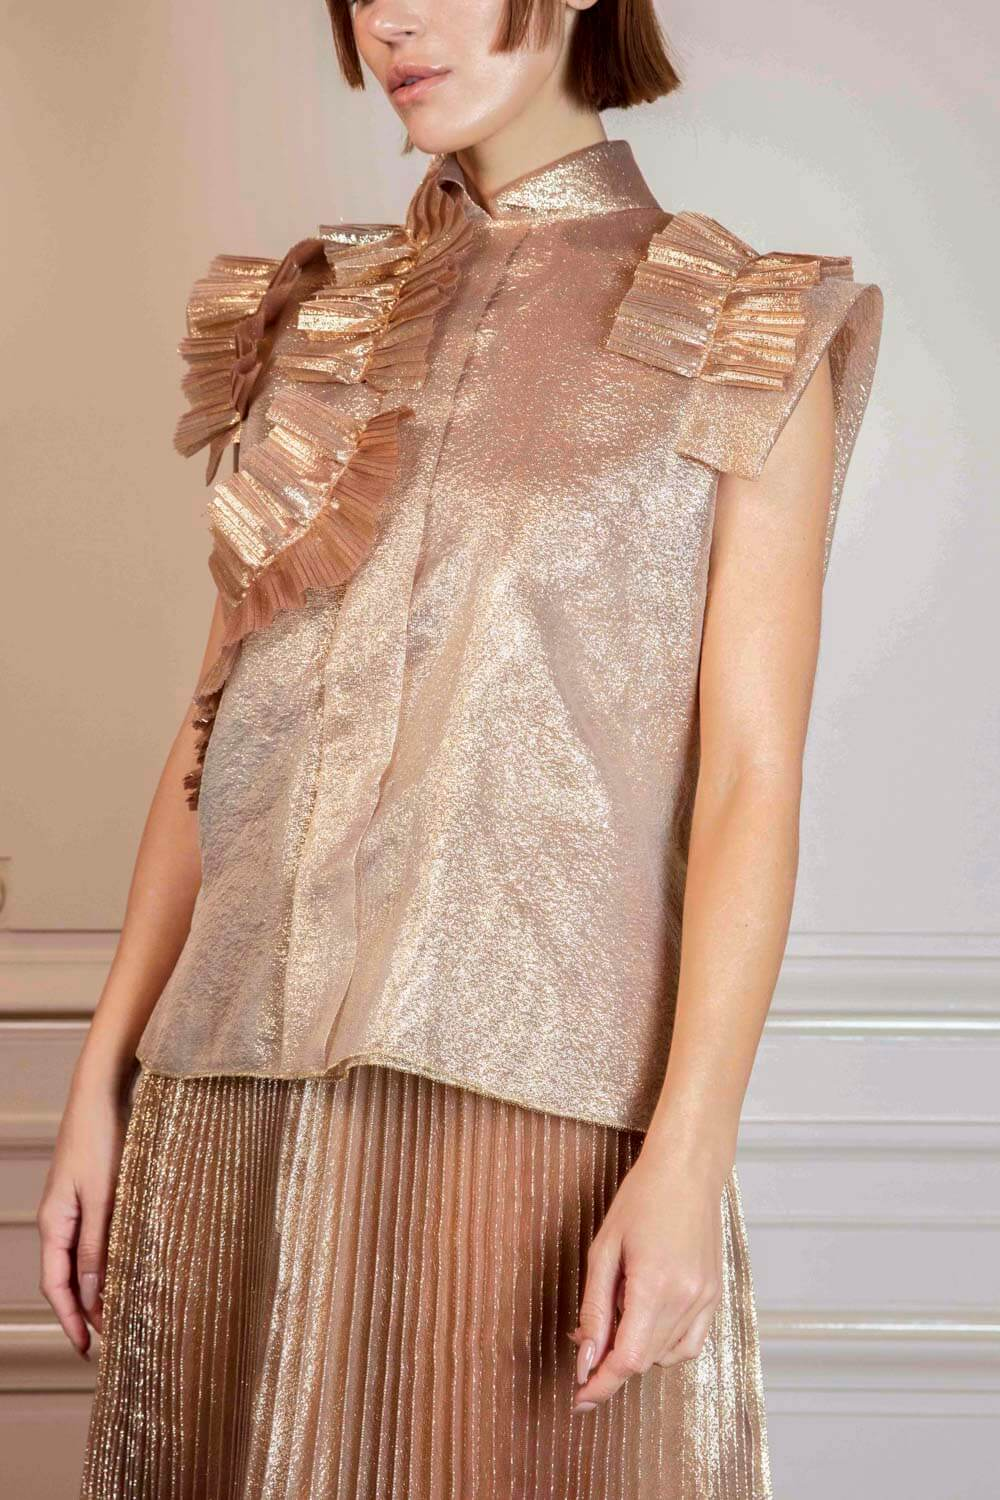 Translucent gold top with mandarin collar and frill details on sleeves and corsage